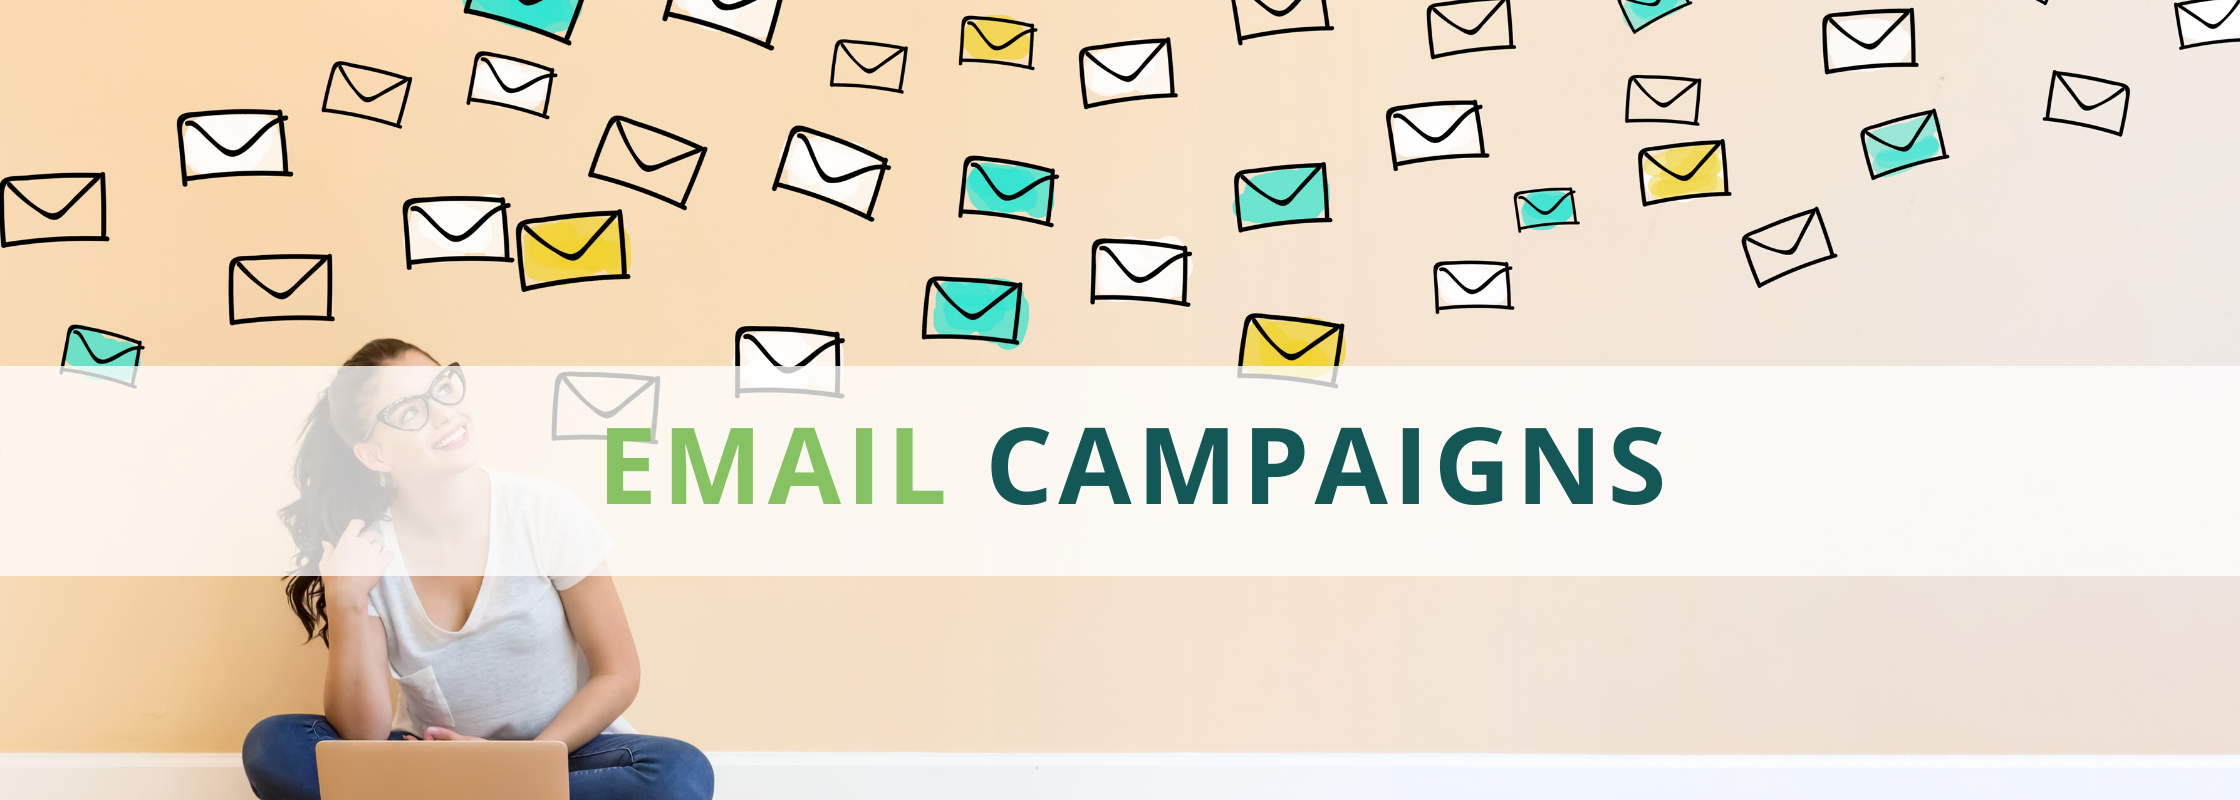 Email Marketing Campaigns - Outsourced marketing service South Wales